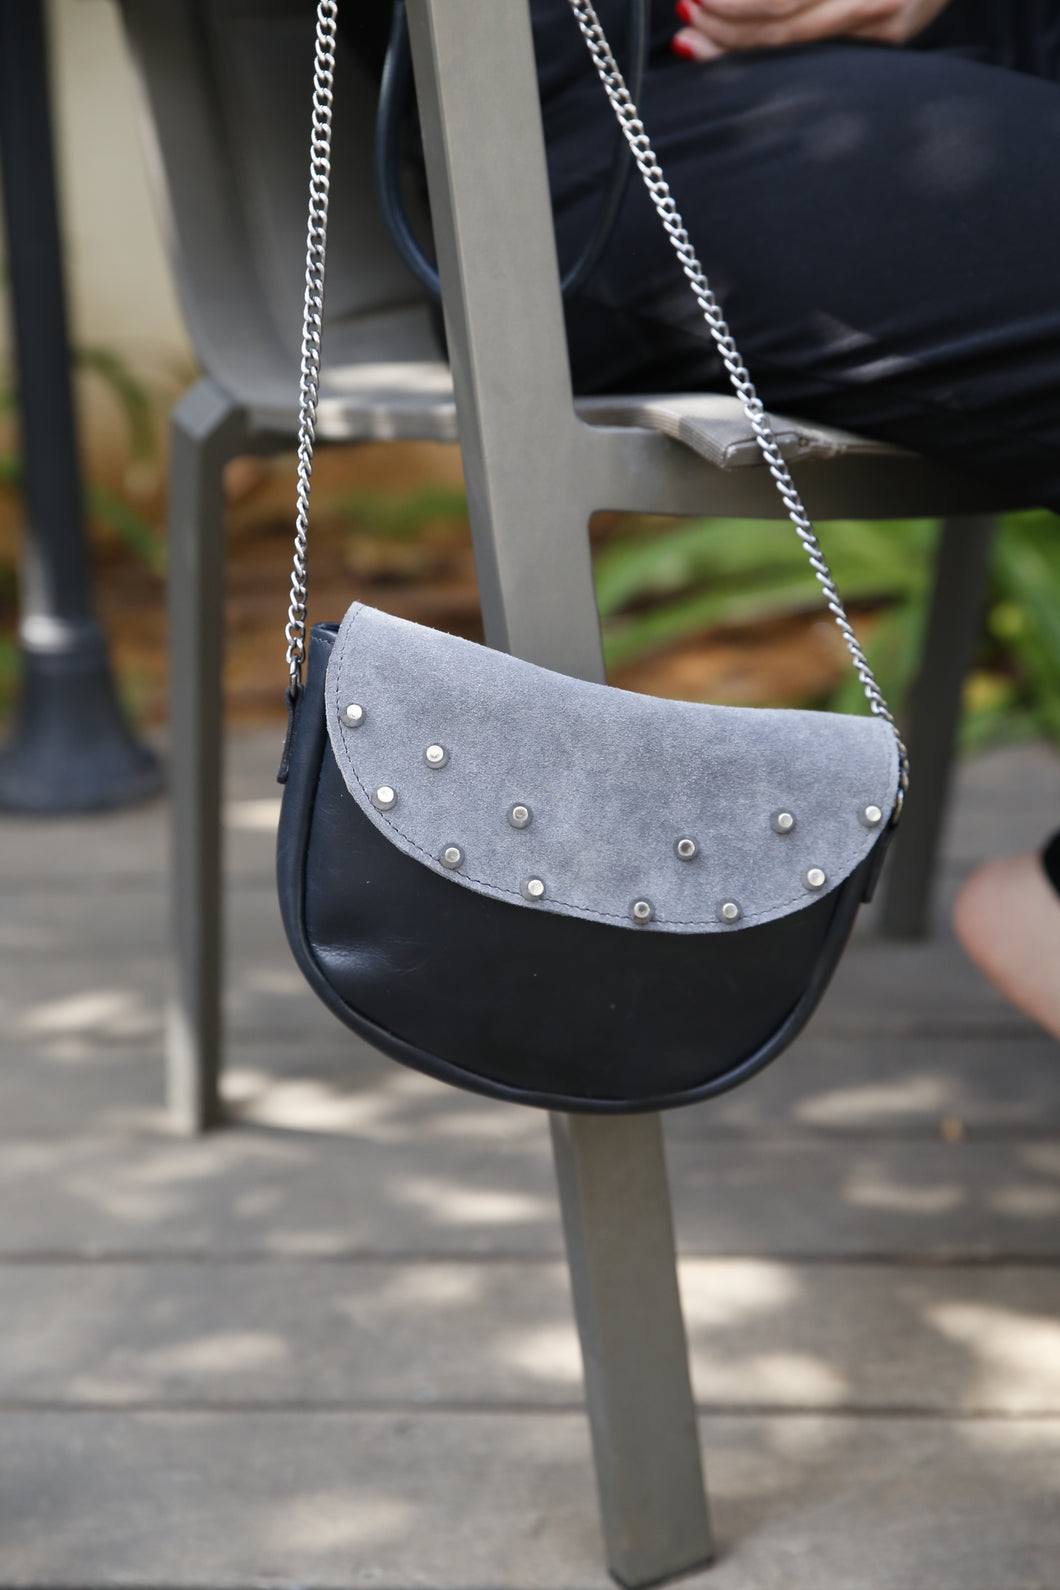 Silver leather & suede top shoulder bag